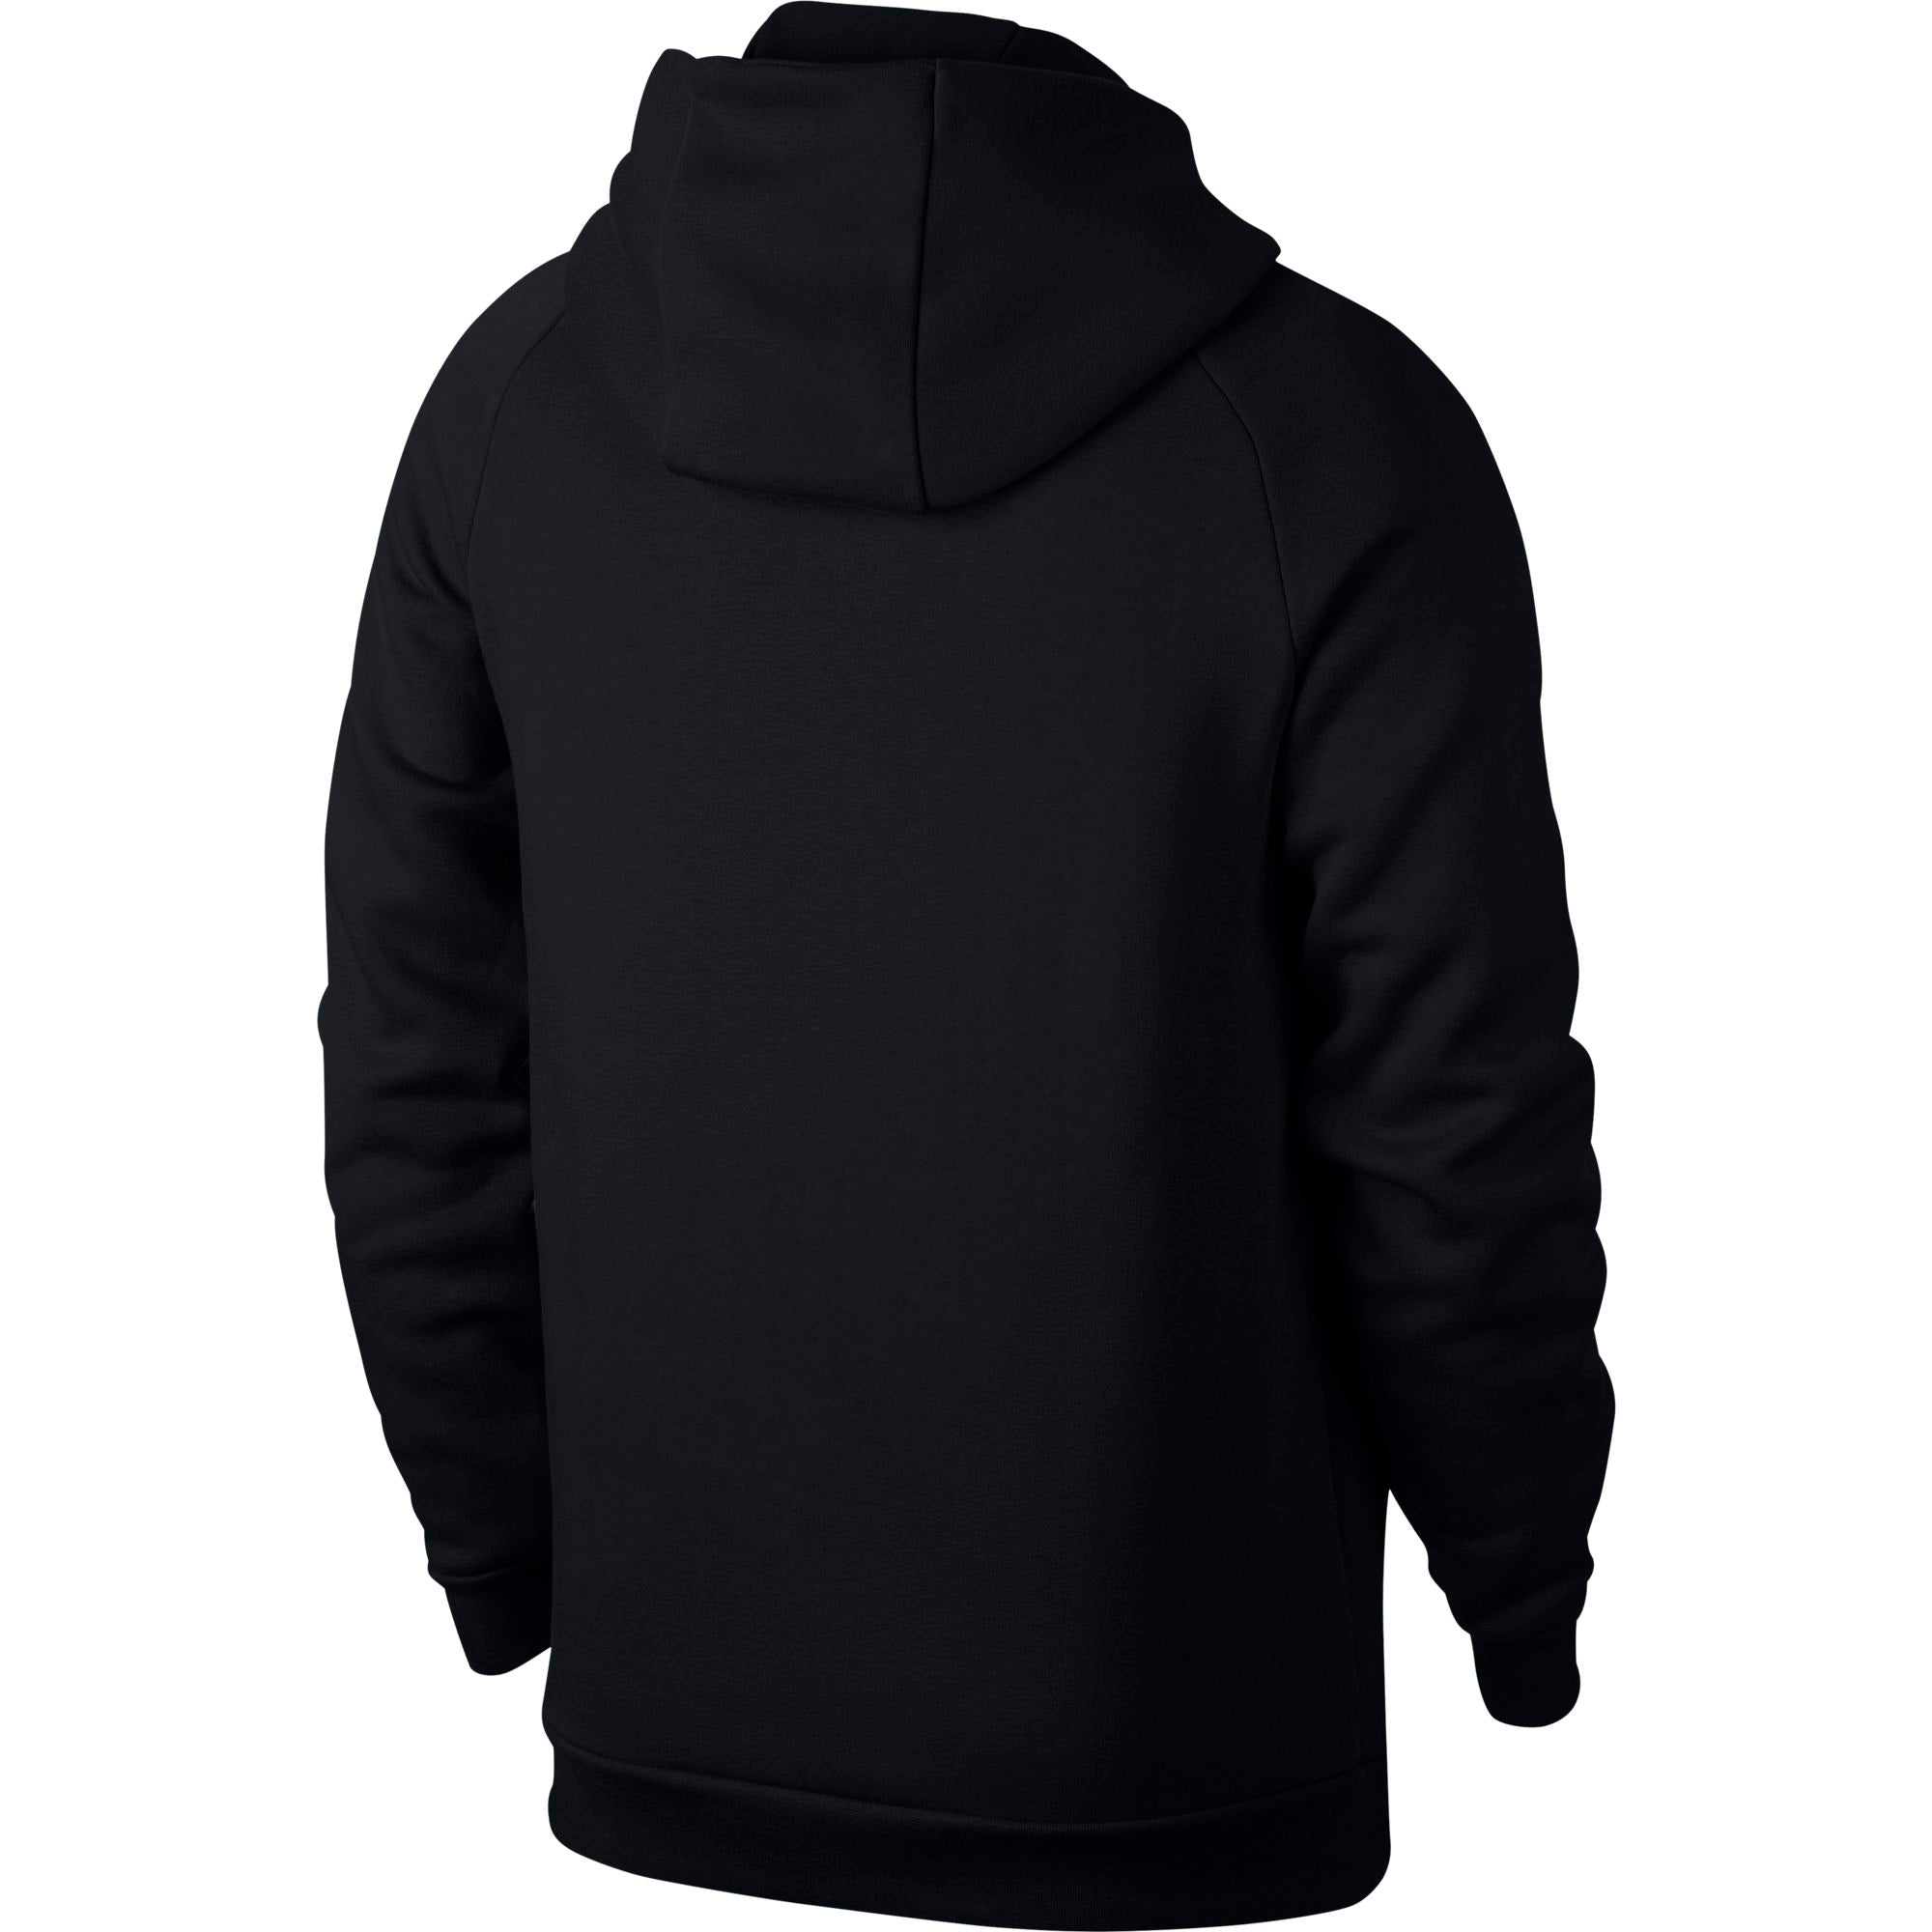 Nike Jordan Jumpman Pullover Fleece Hoodie - Black/White